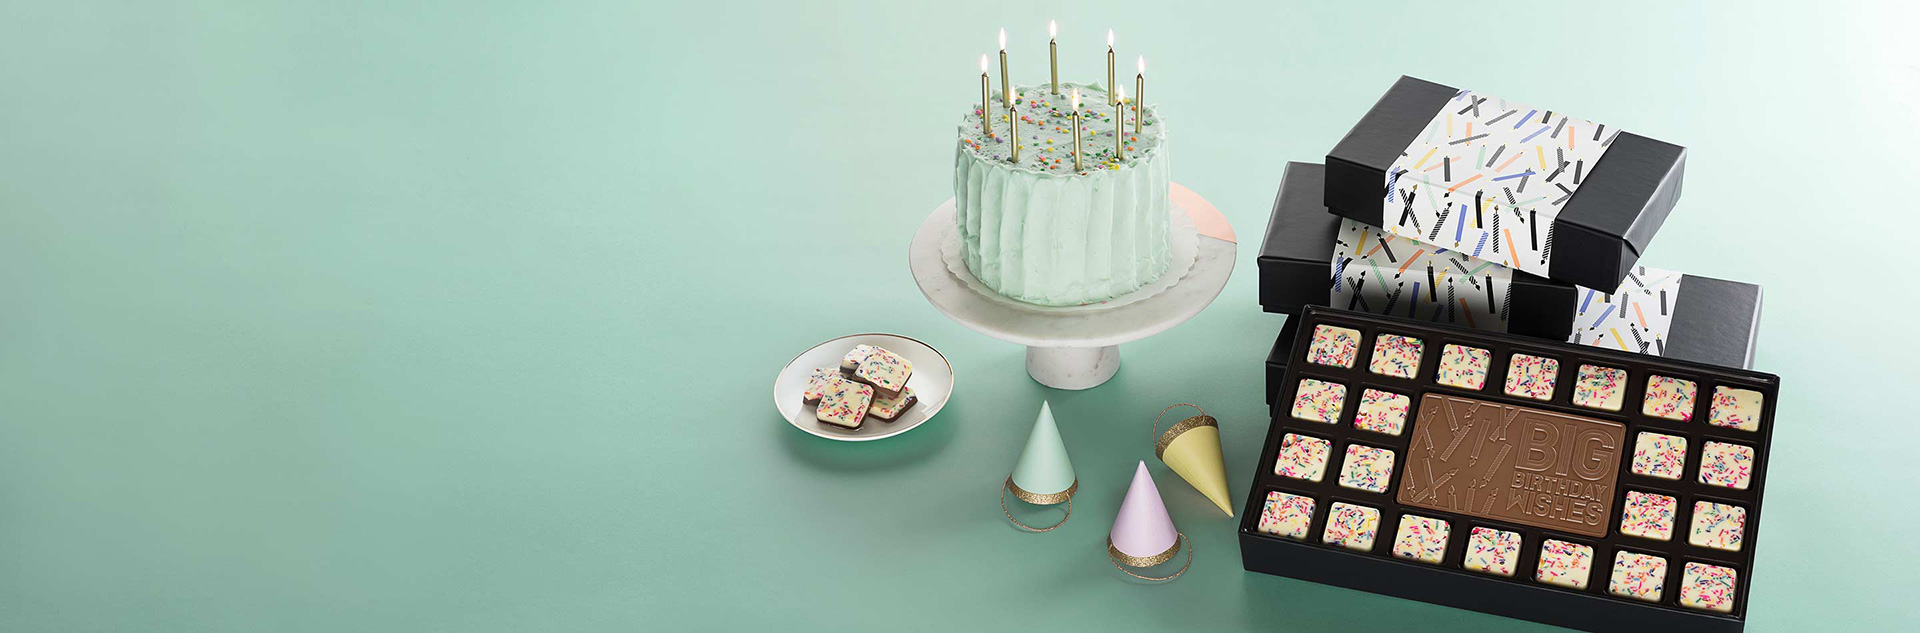 A New Trend In Gift Giving Customizable And Delicious Birthday Cake Alternatives